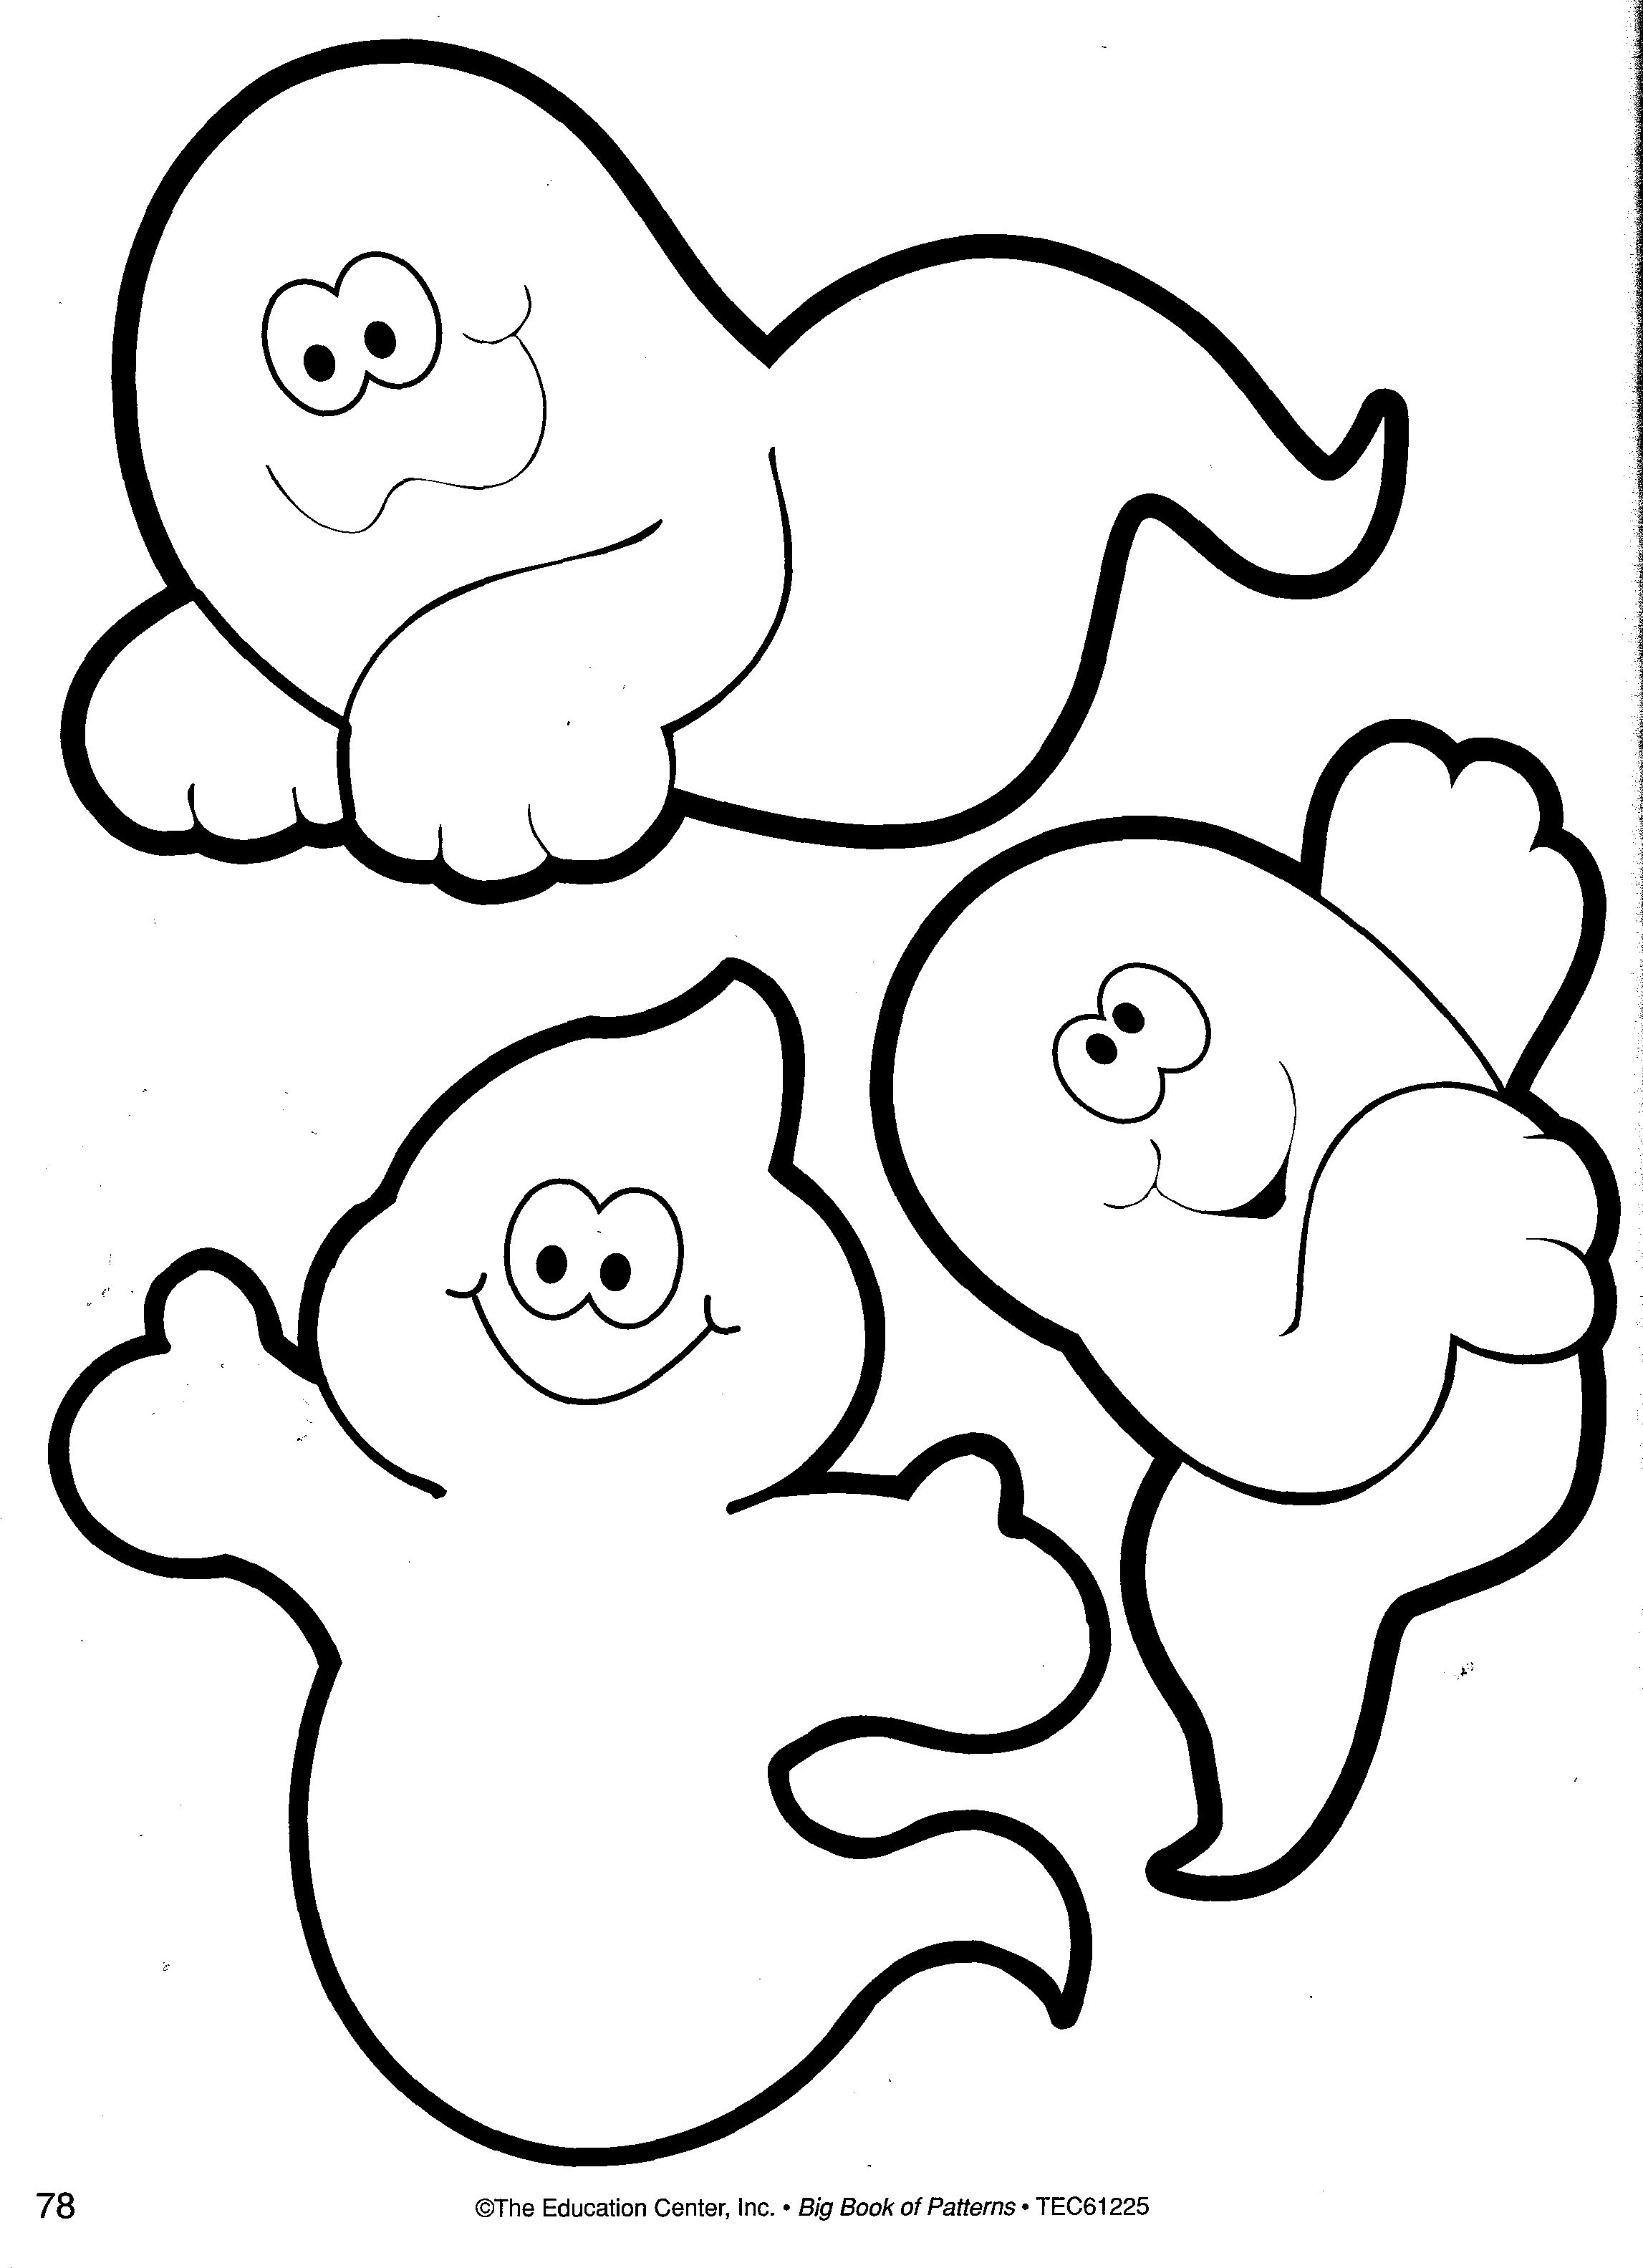 Halloween Patterns (ghosts). Use these cute patterns for